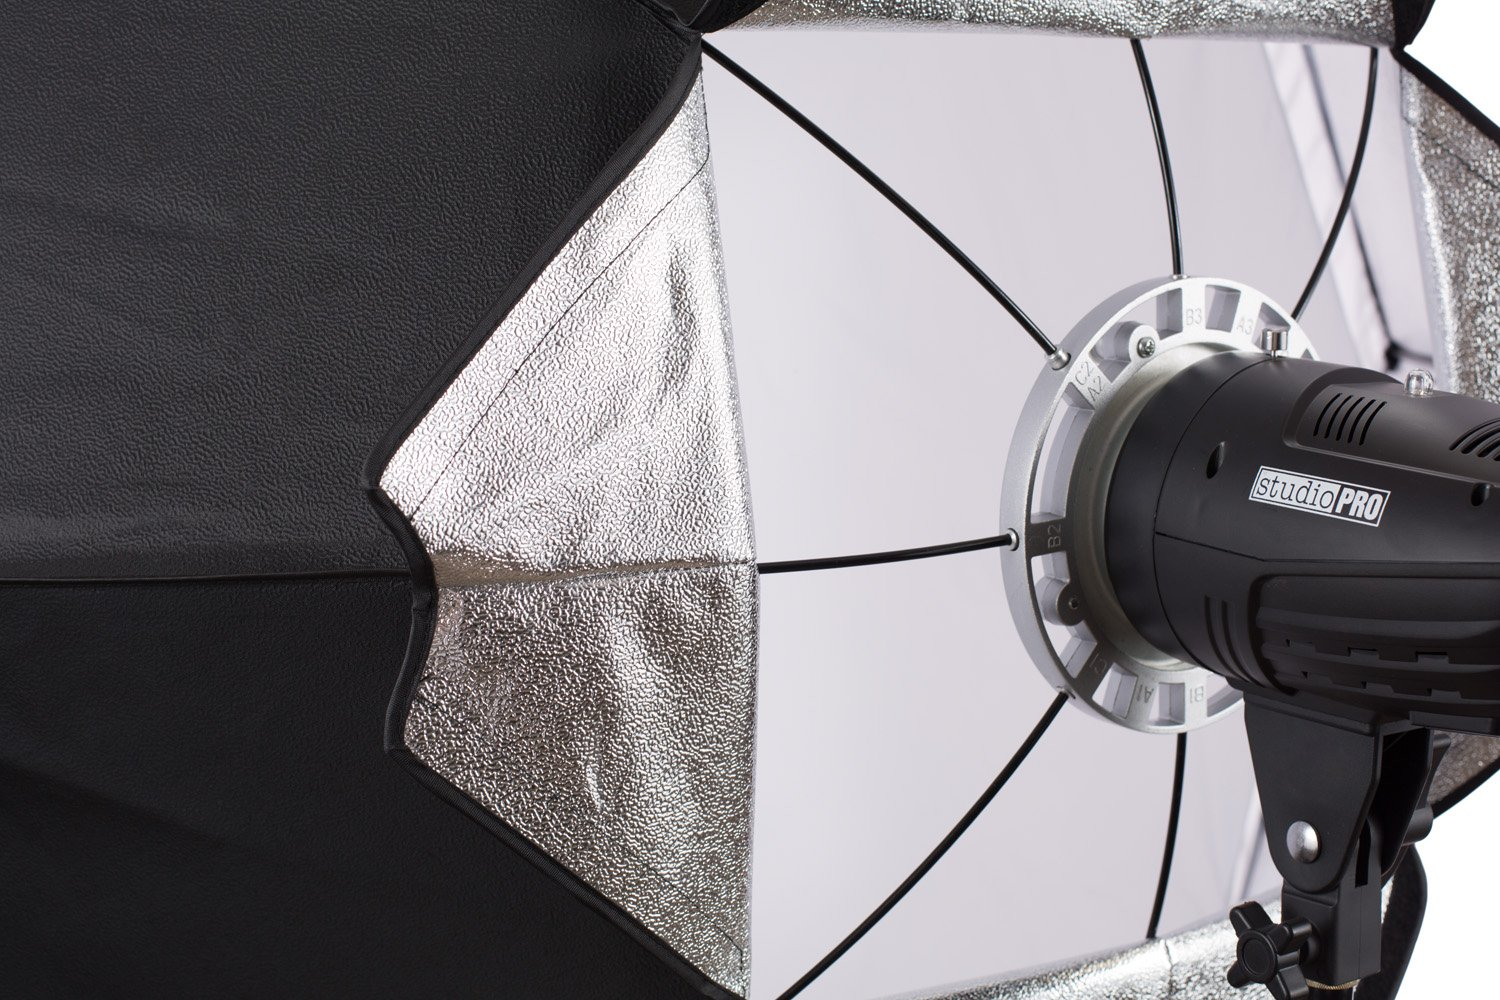 StudioPRO 68 Inch Octagon Softbox Photography Light Diffuser & Modifier with Bowens Speedring Mount For Monolight Photo Studio Strobe Lighting by Fovitec (Image #7)